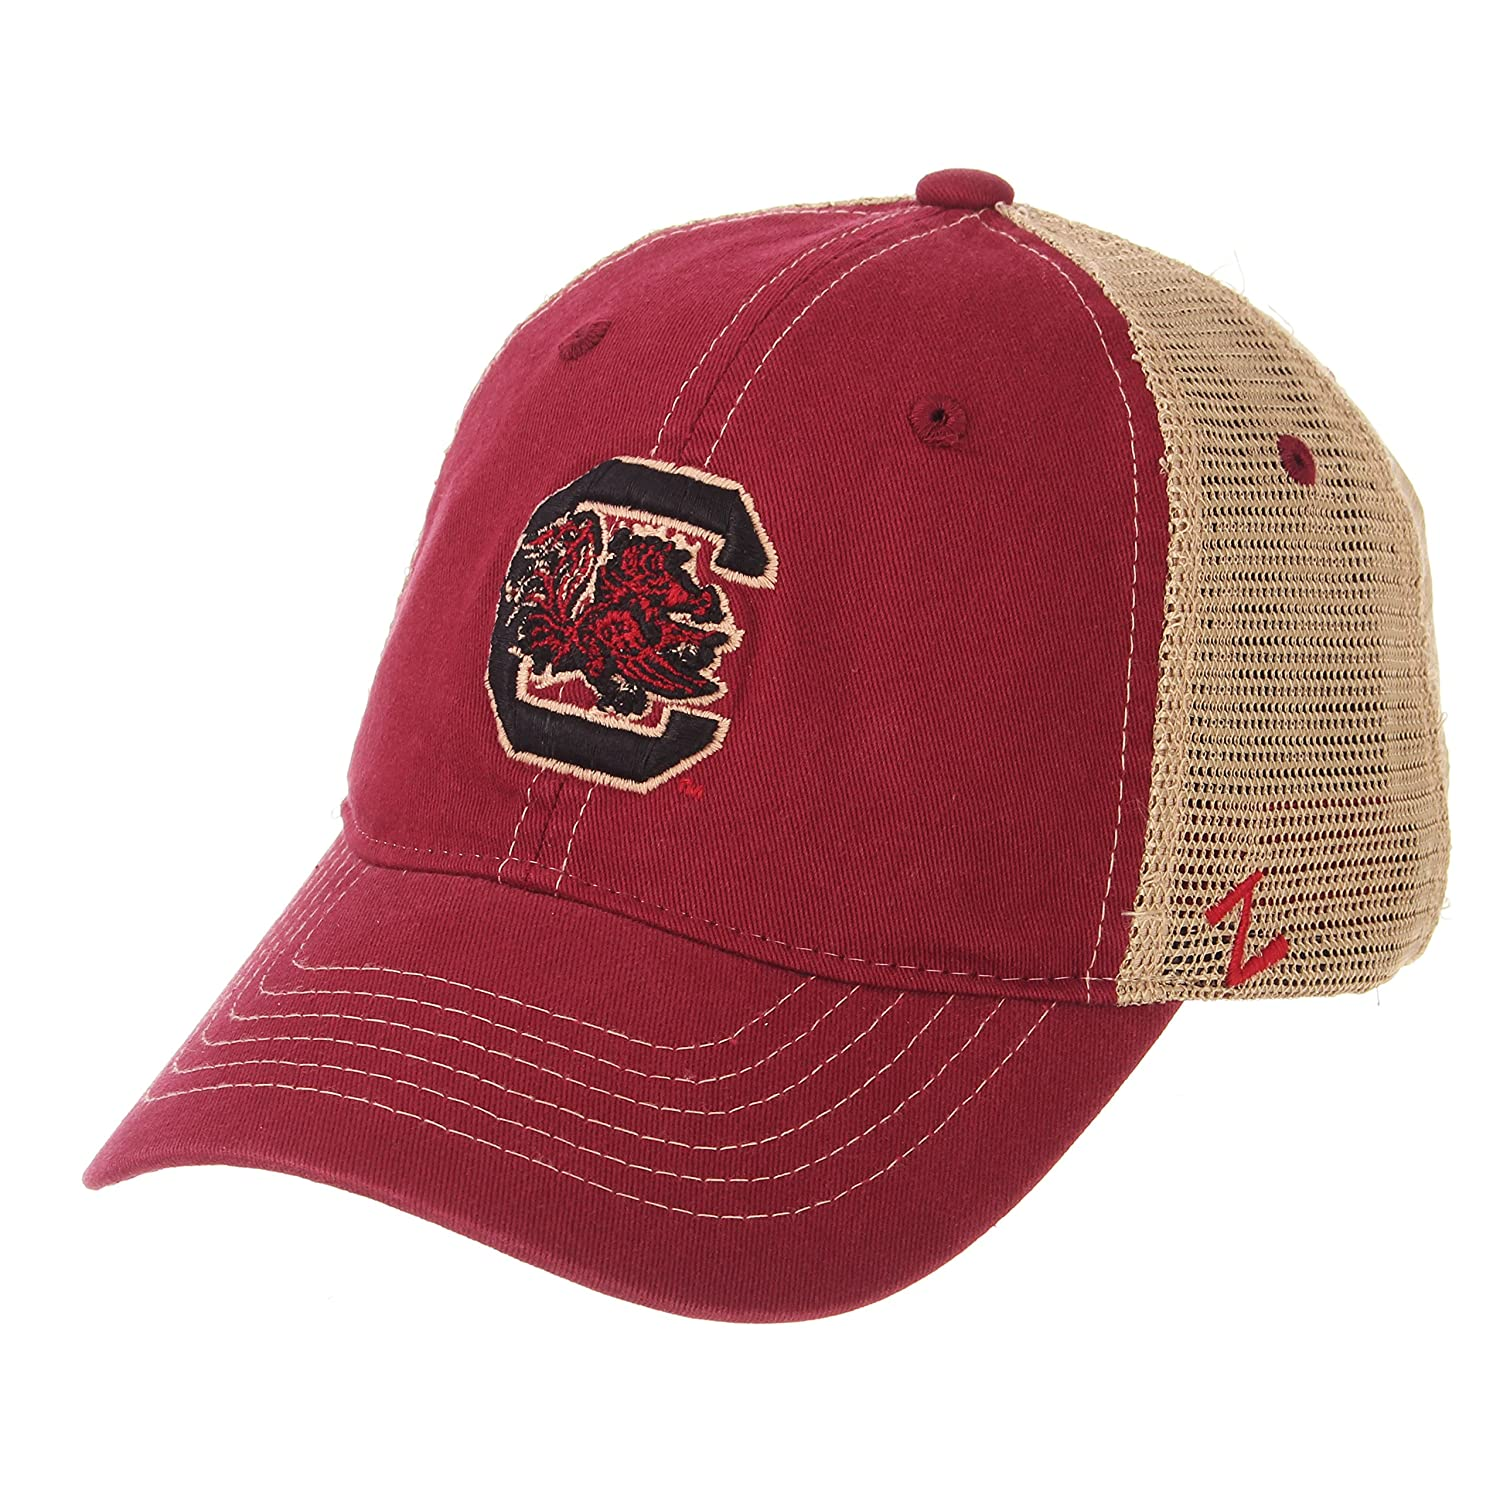 Zephyr Mens Institution Relaxed Cap Adjustable Cardinal